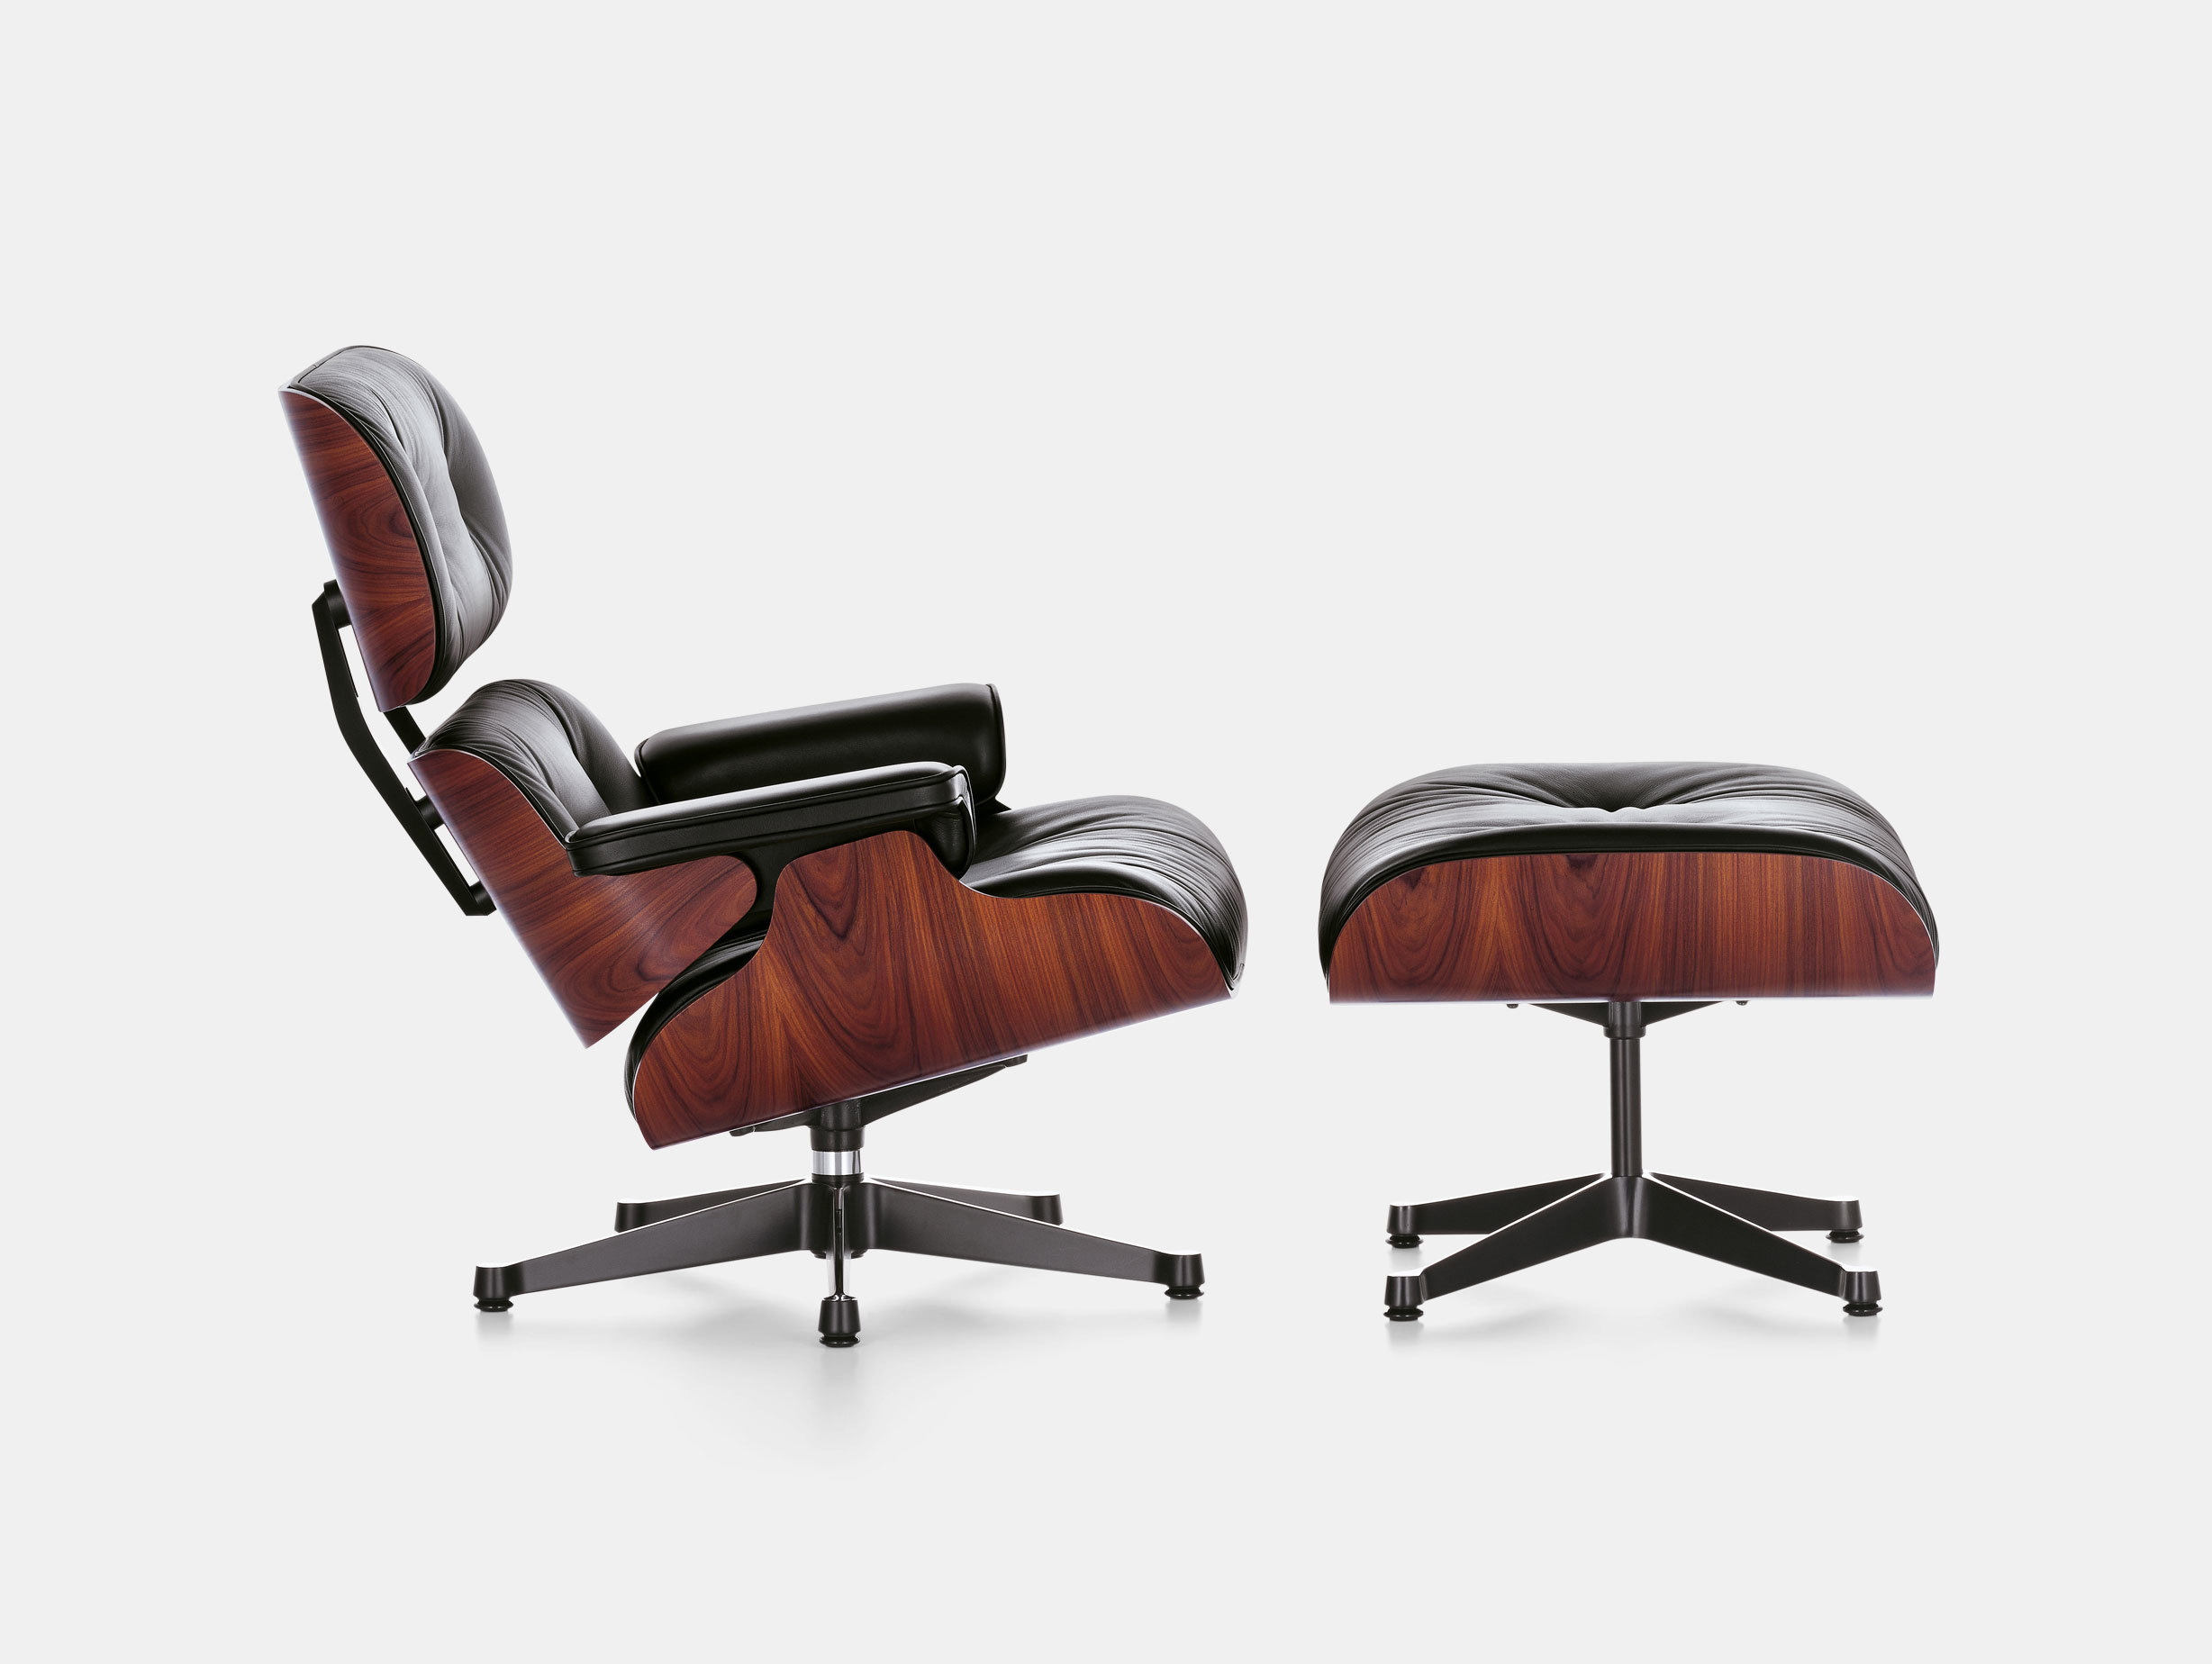 Eames Lounge Chair & Ottoman image 1